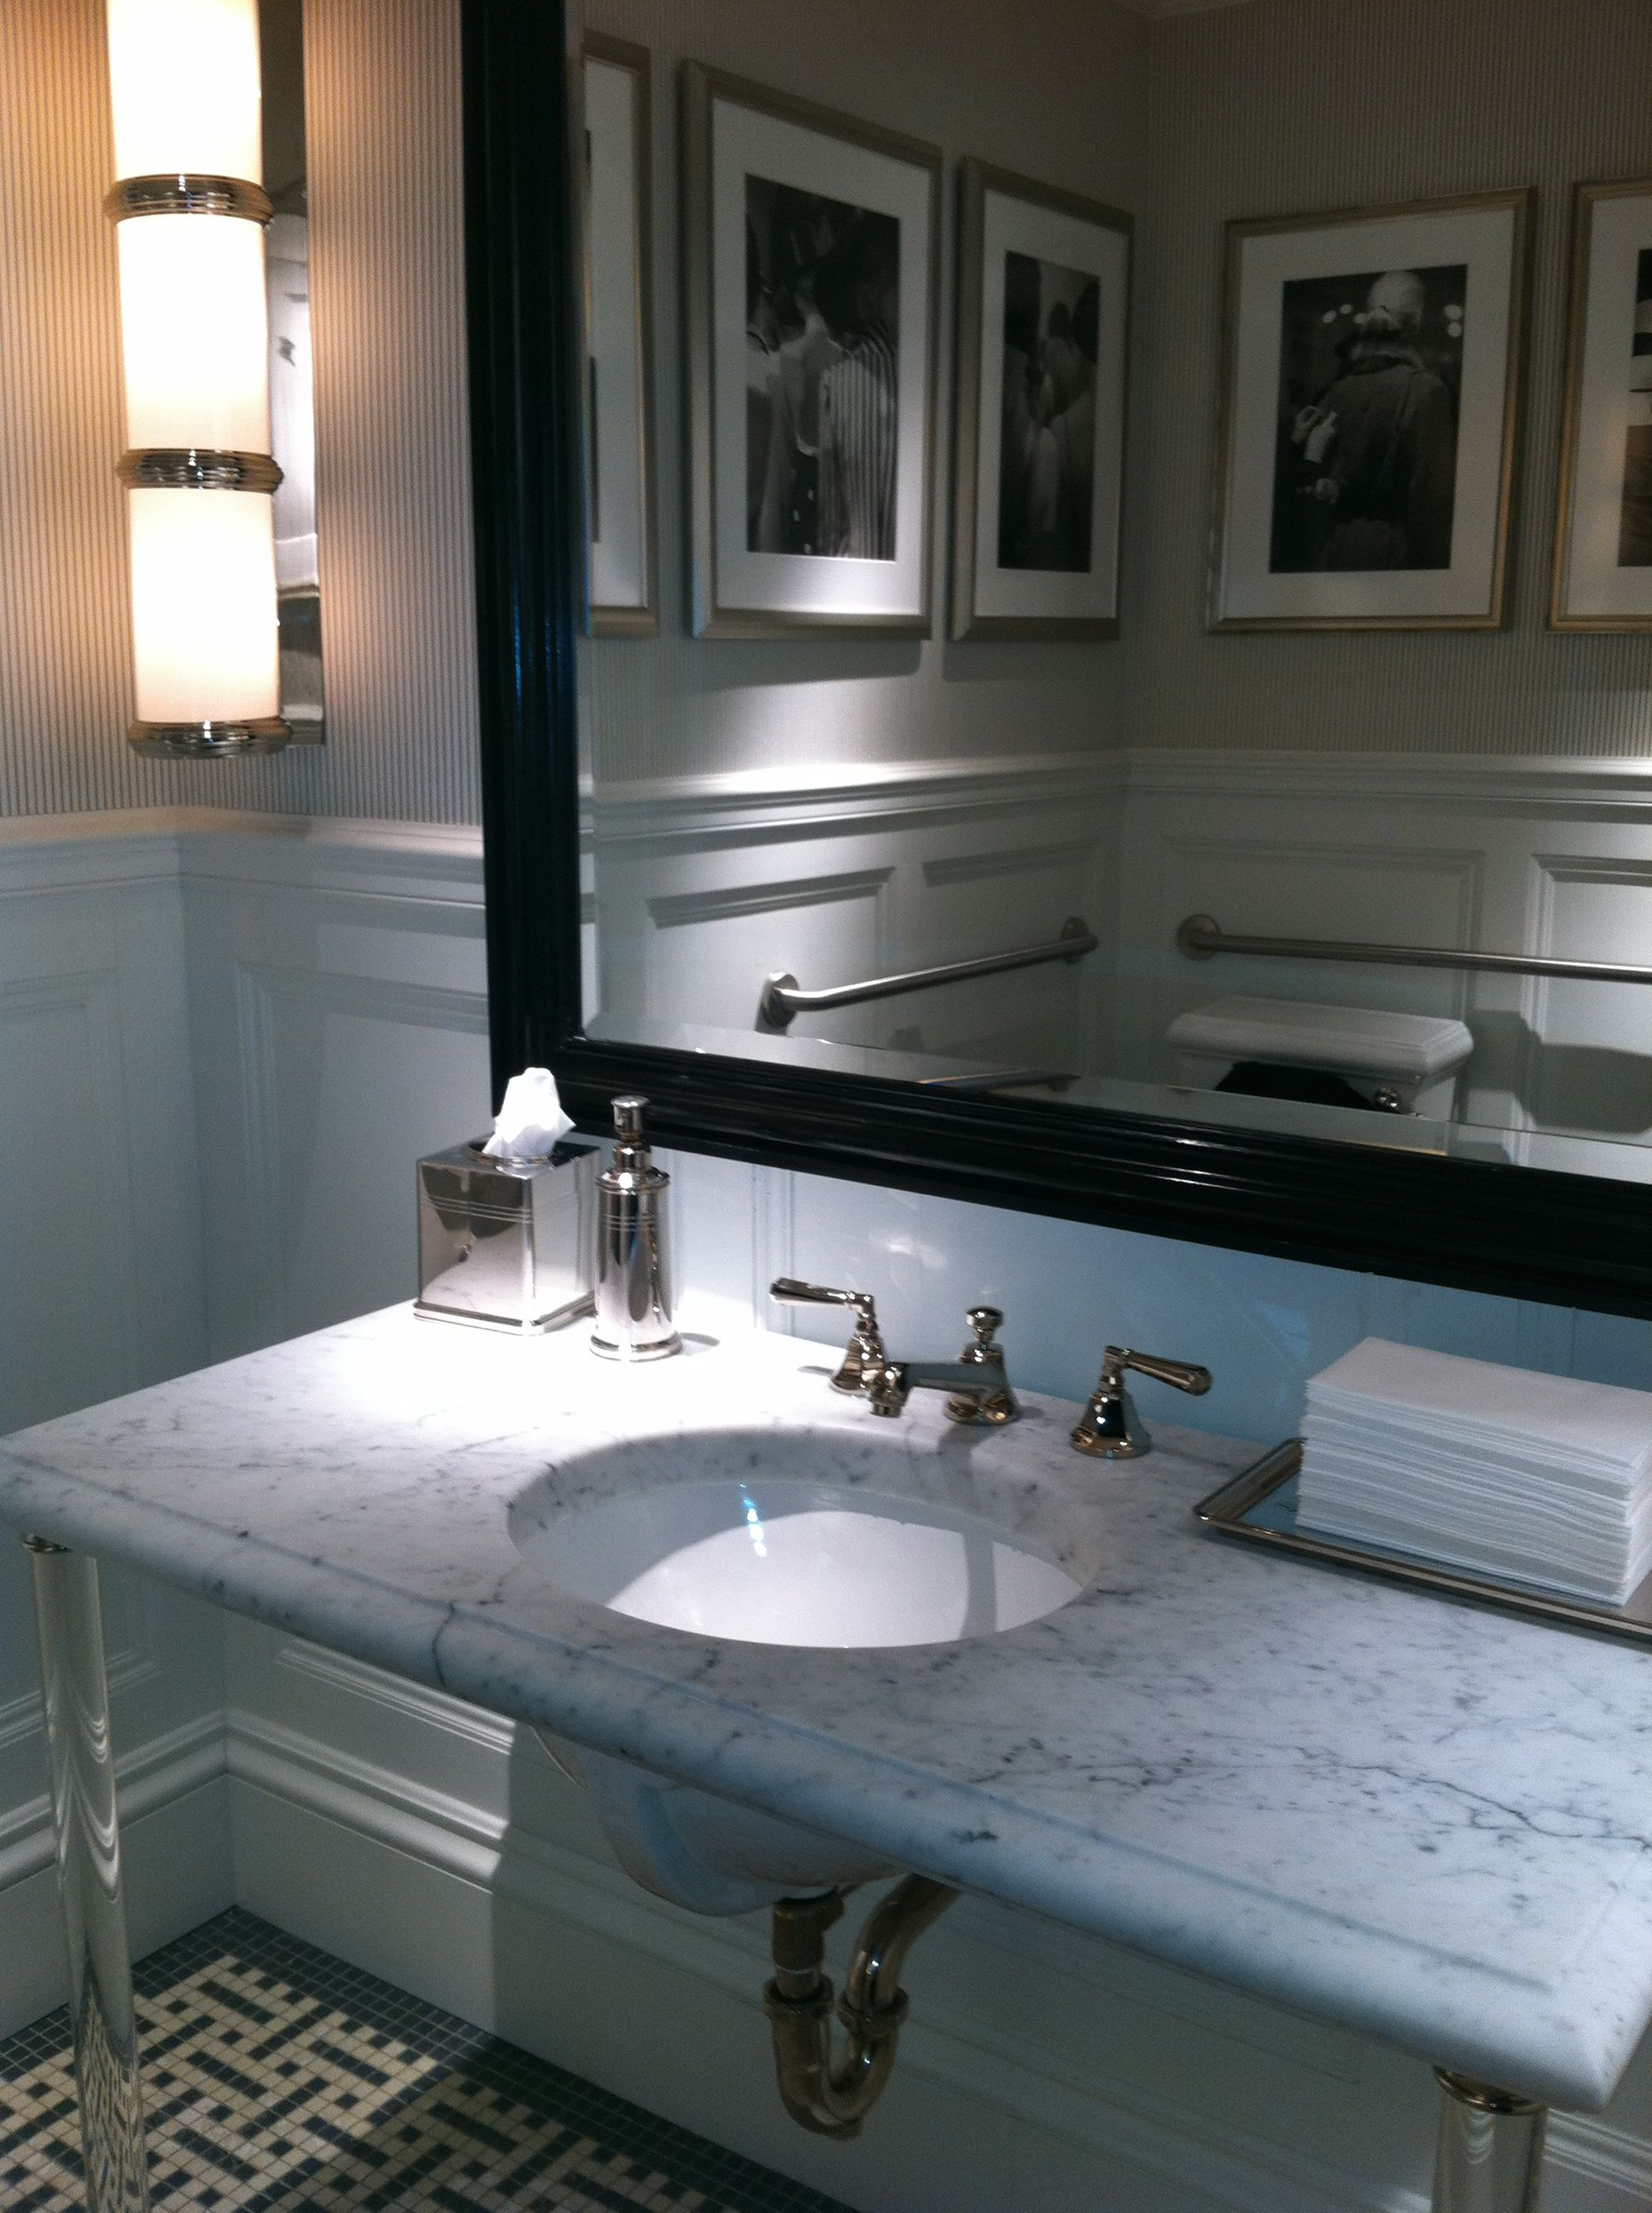 Merveilleux The Ladies Room In The New Ralph Lauren Womenu0027s Store On Madison Avenue And  79th Street Is Signature RL. The Use Of A Cararra Marble Counter Top On ...